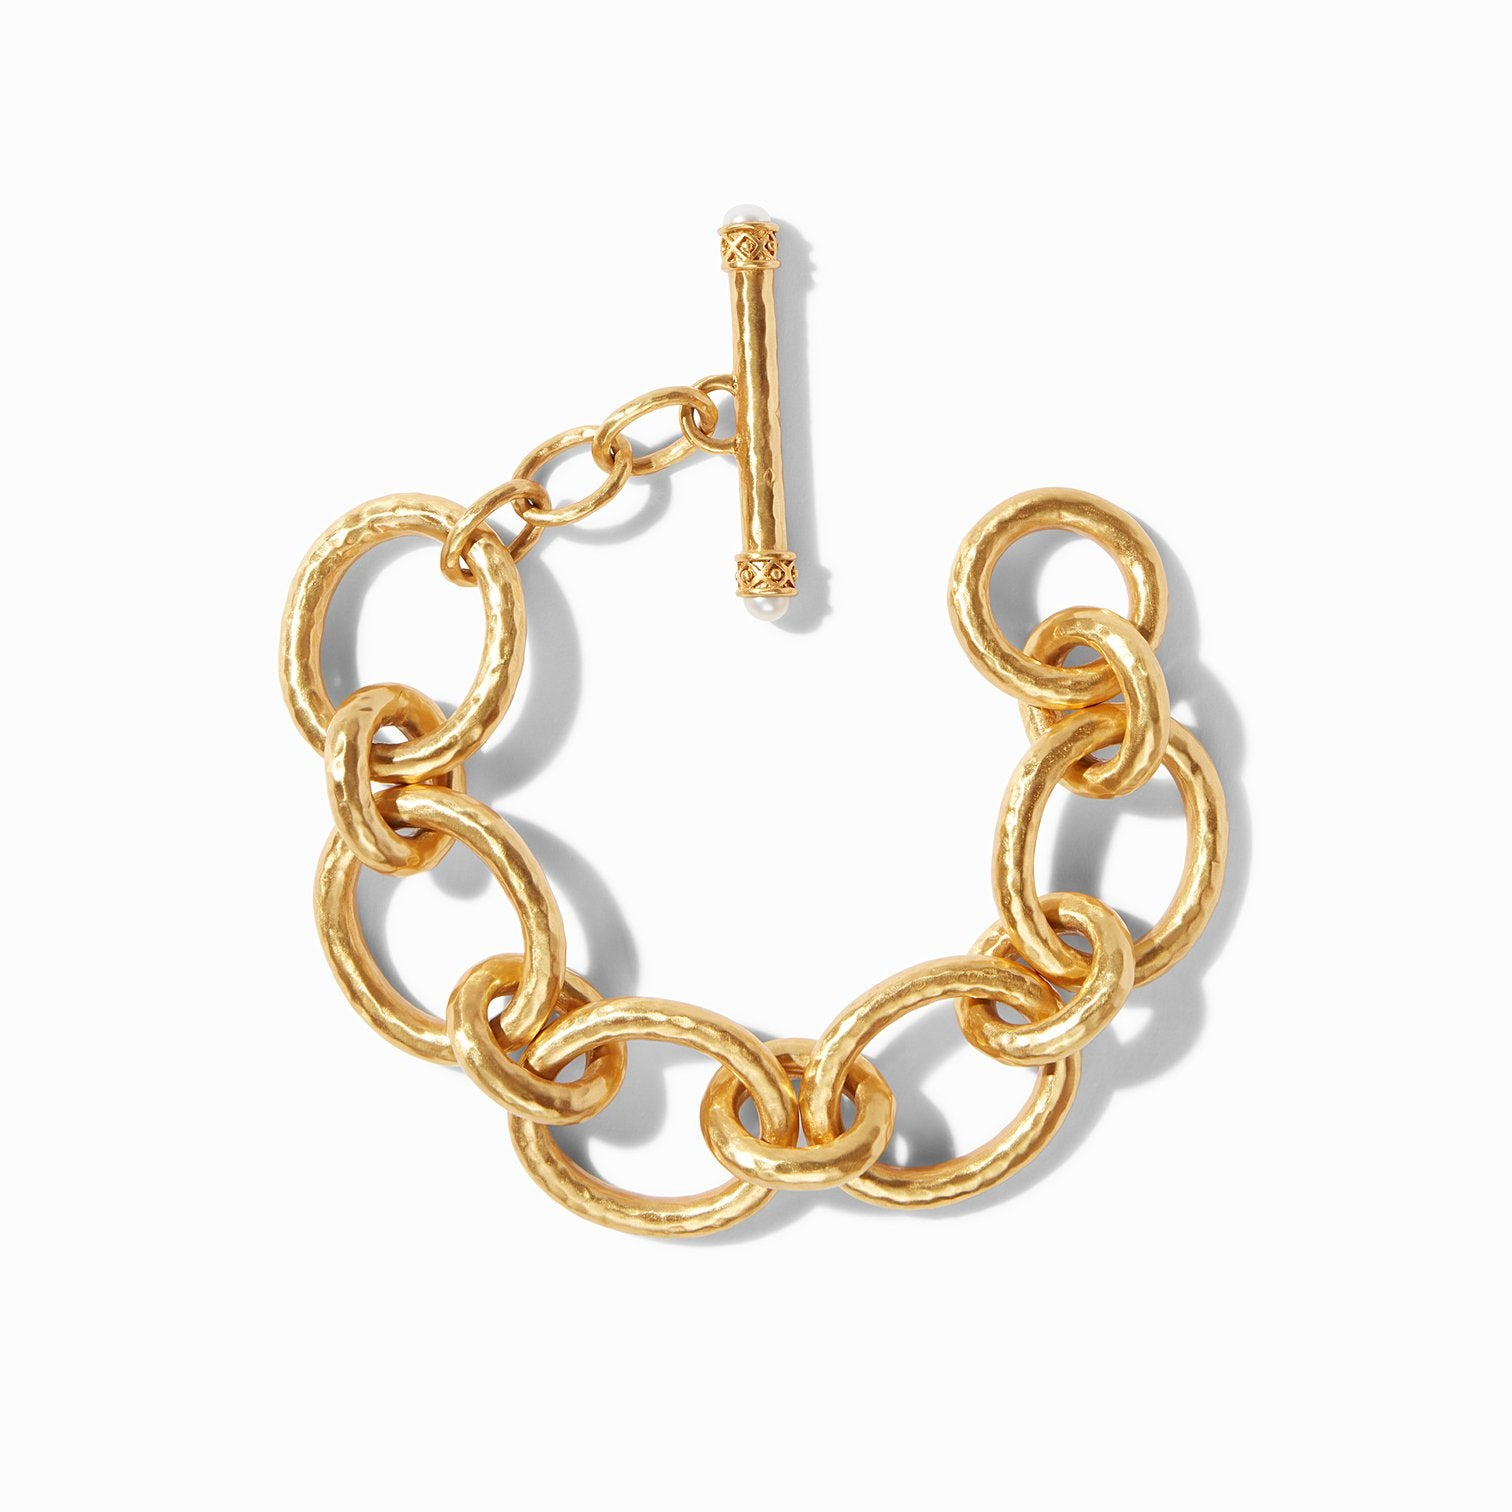 JULIE VOS - Catalina Large Link Bracelet top down view